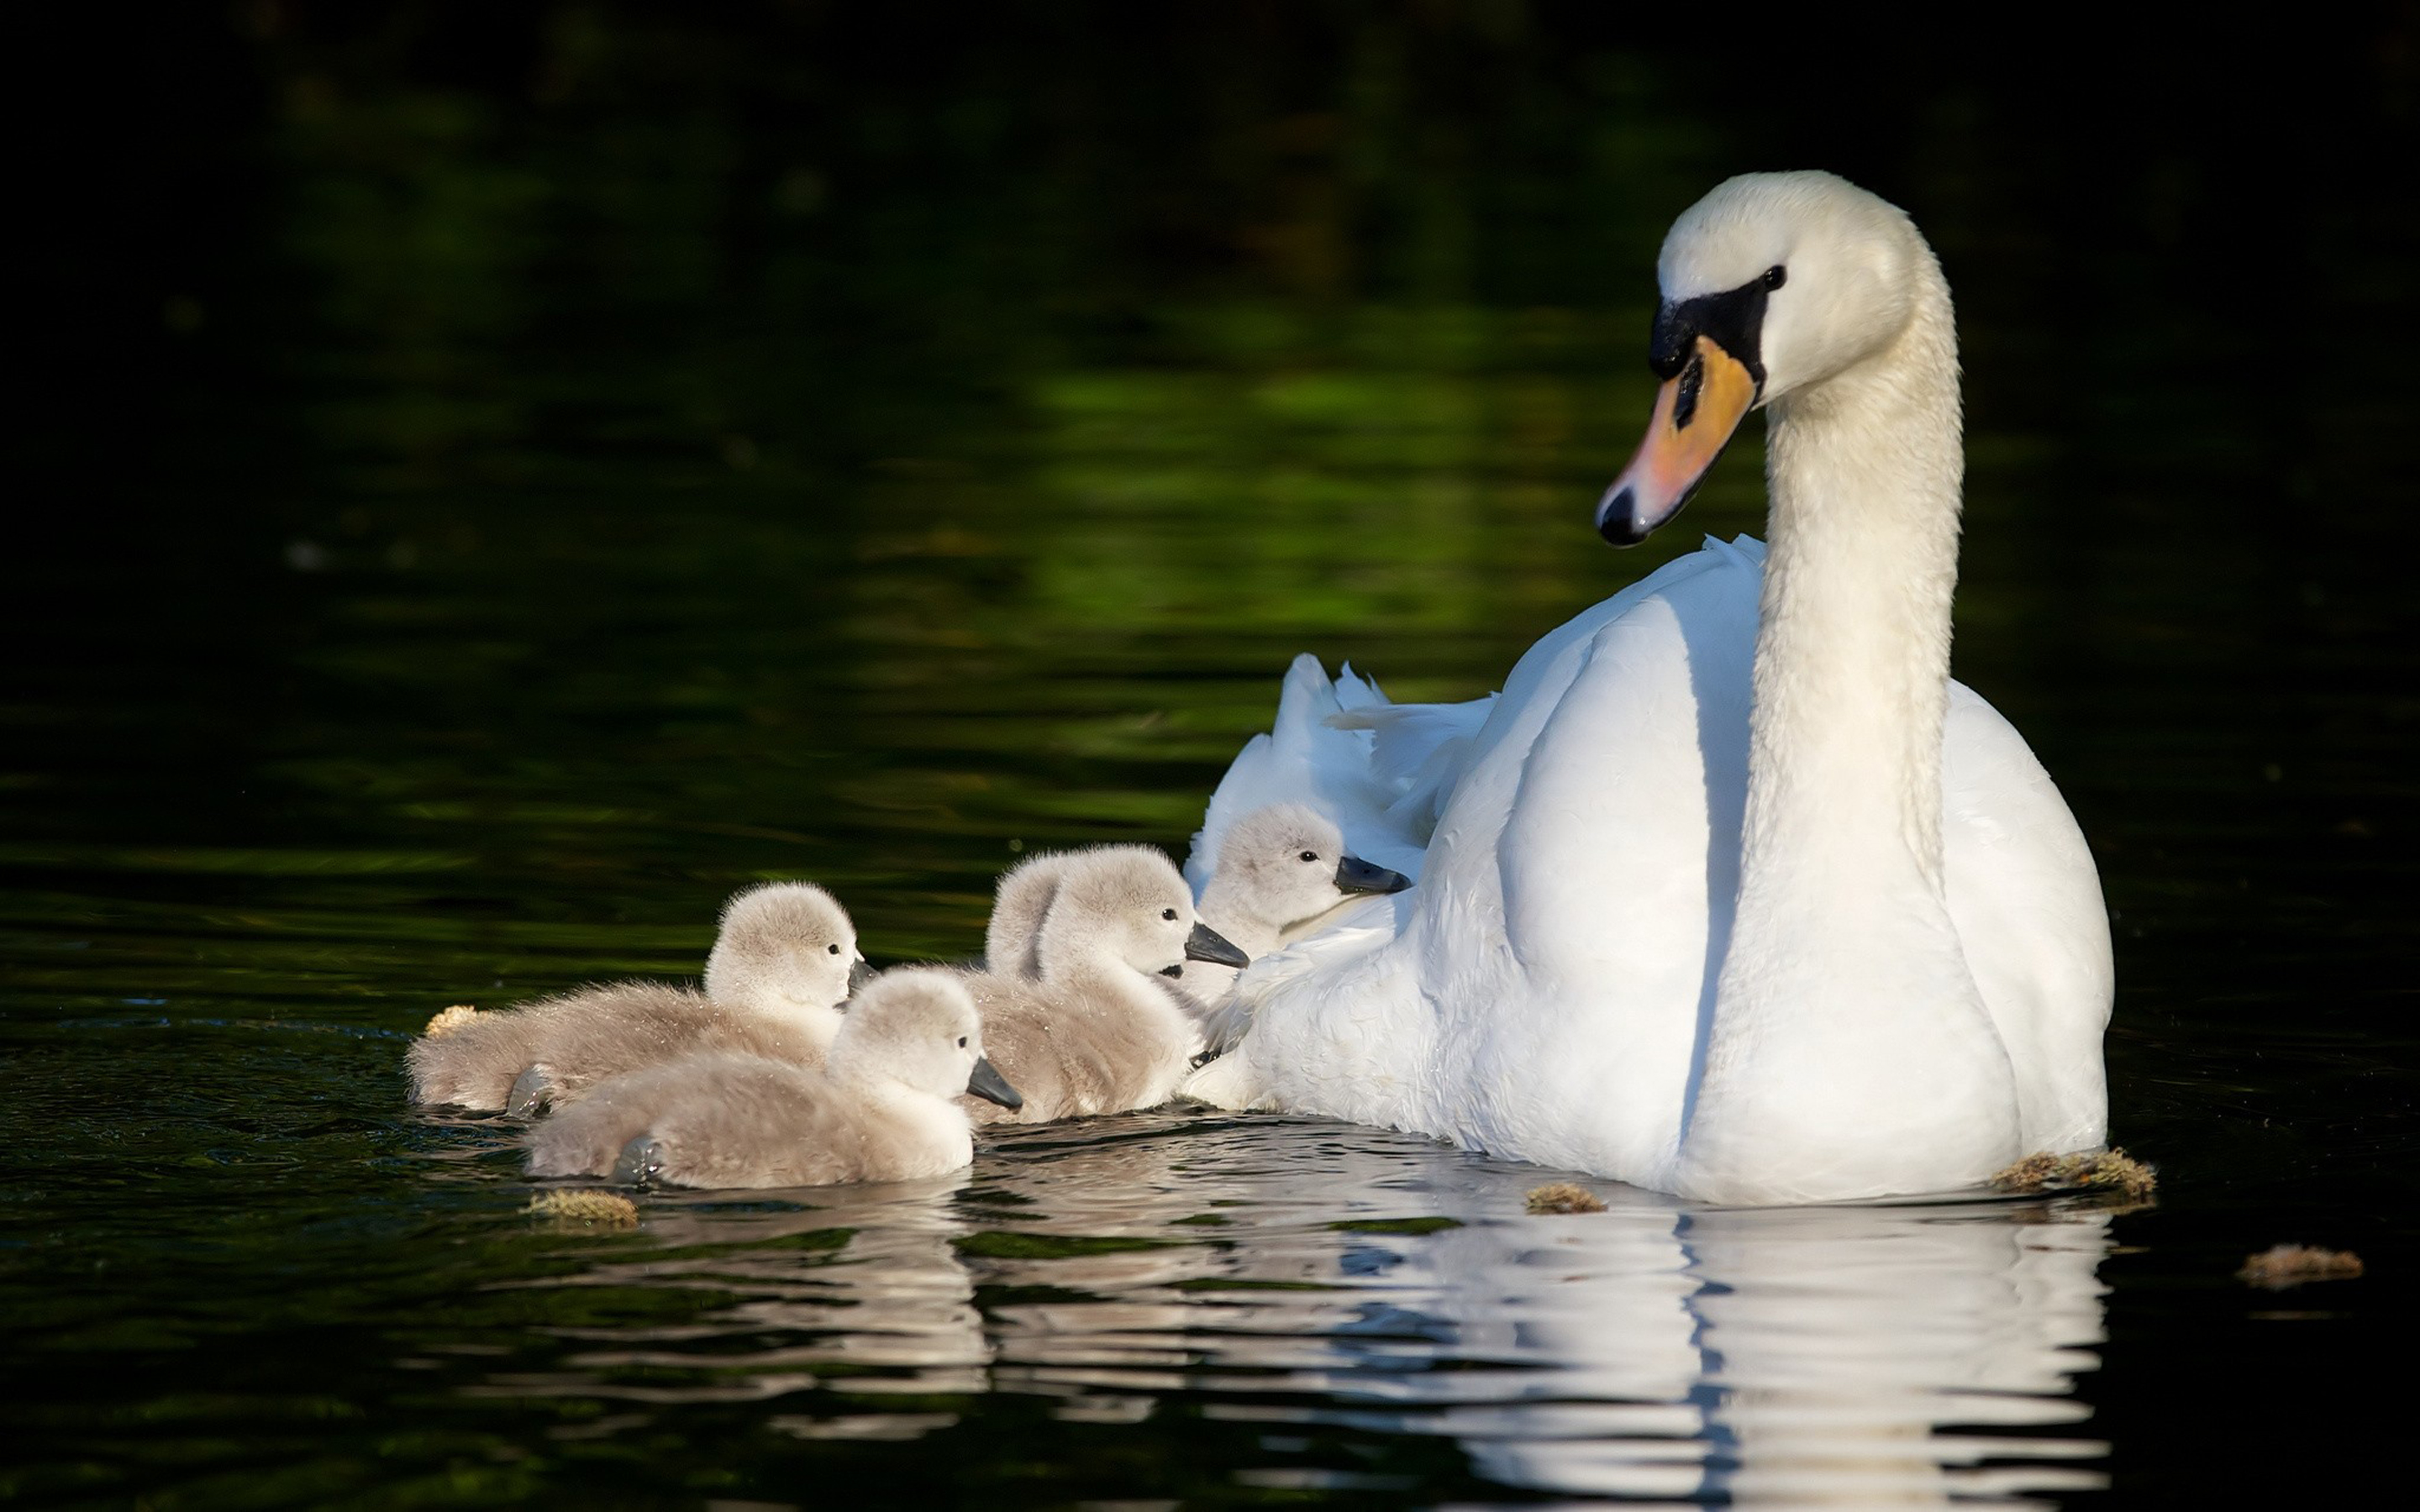 Wallpaper Hd For Desktop Full Screen Cute Birds Swan Family In Lake Walk Wallpaper Widescreen Hd